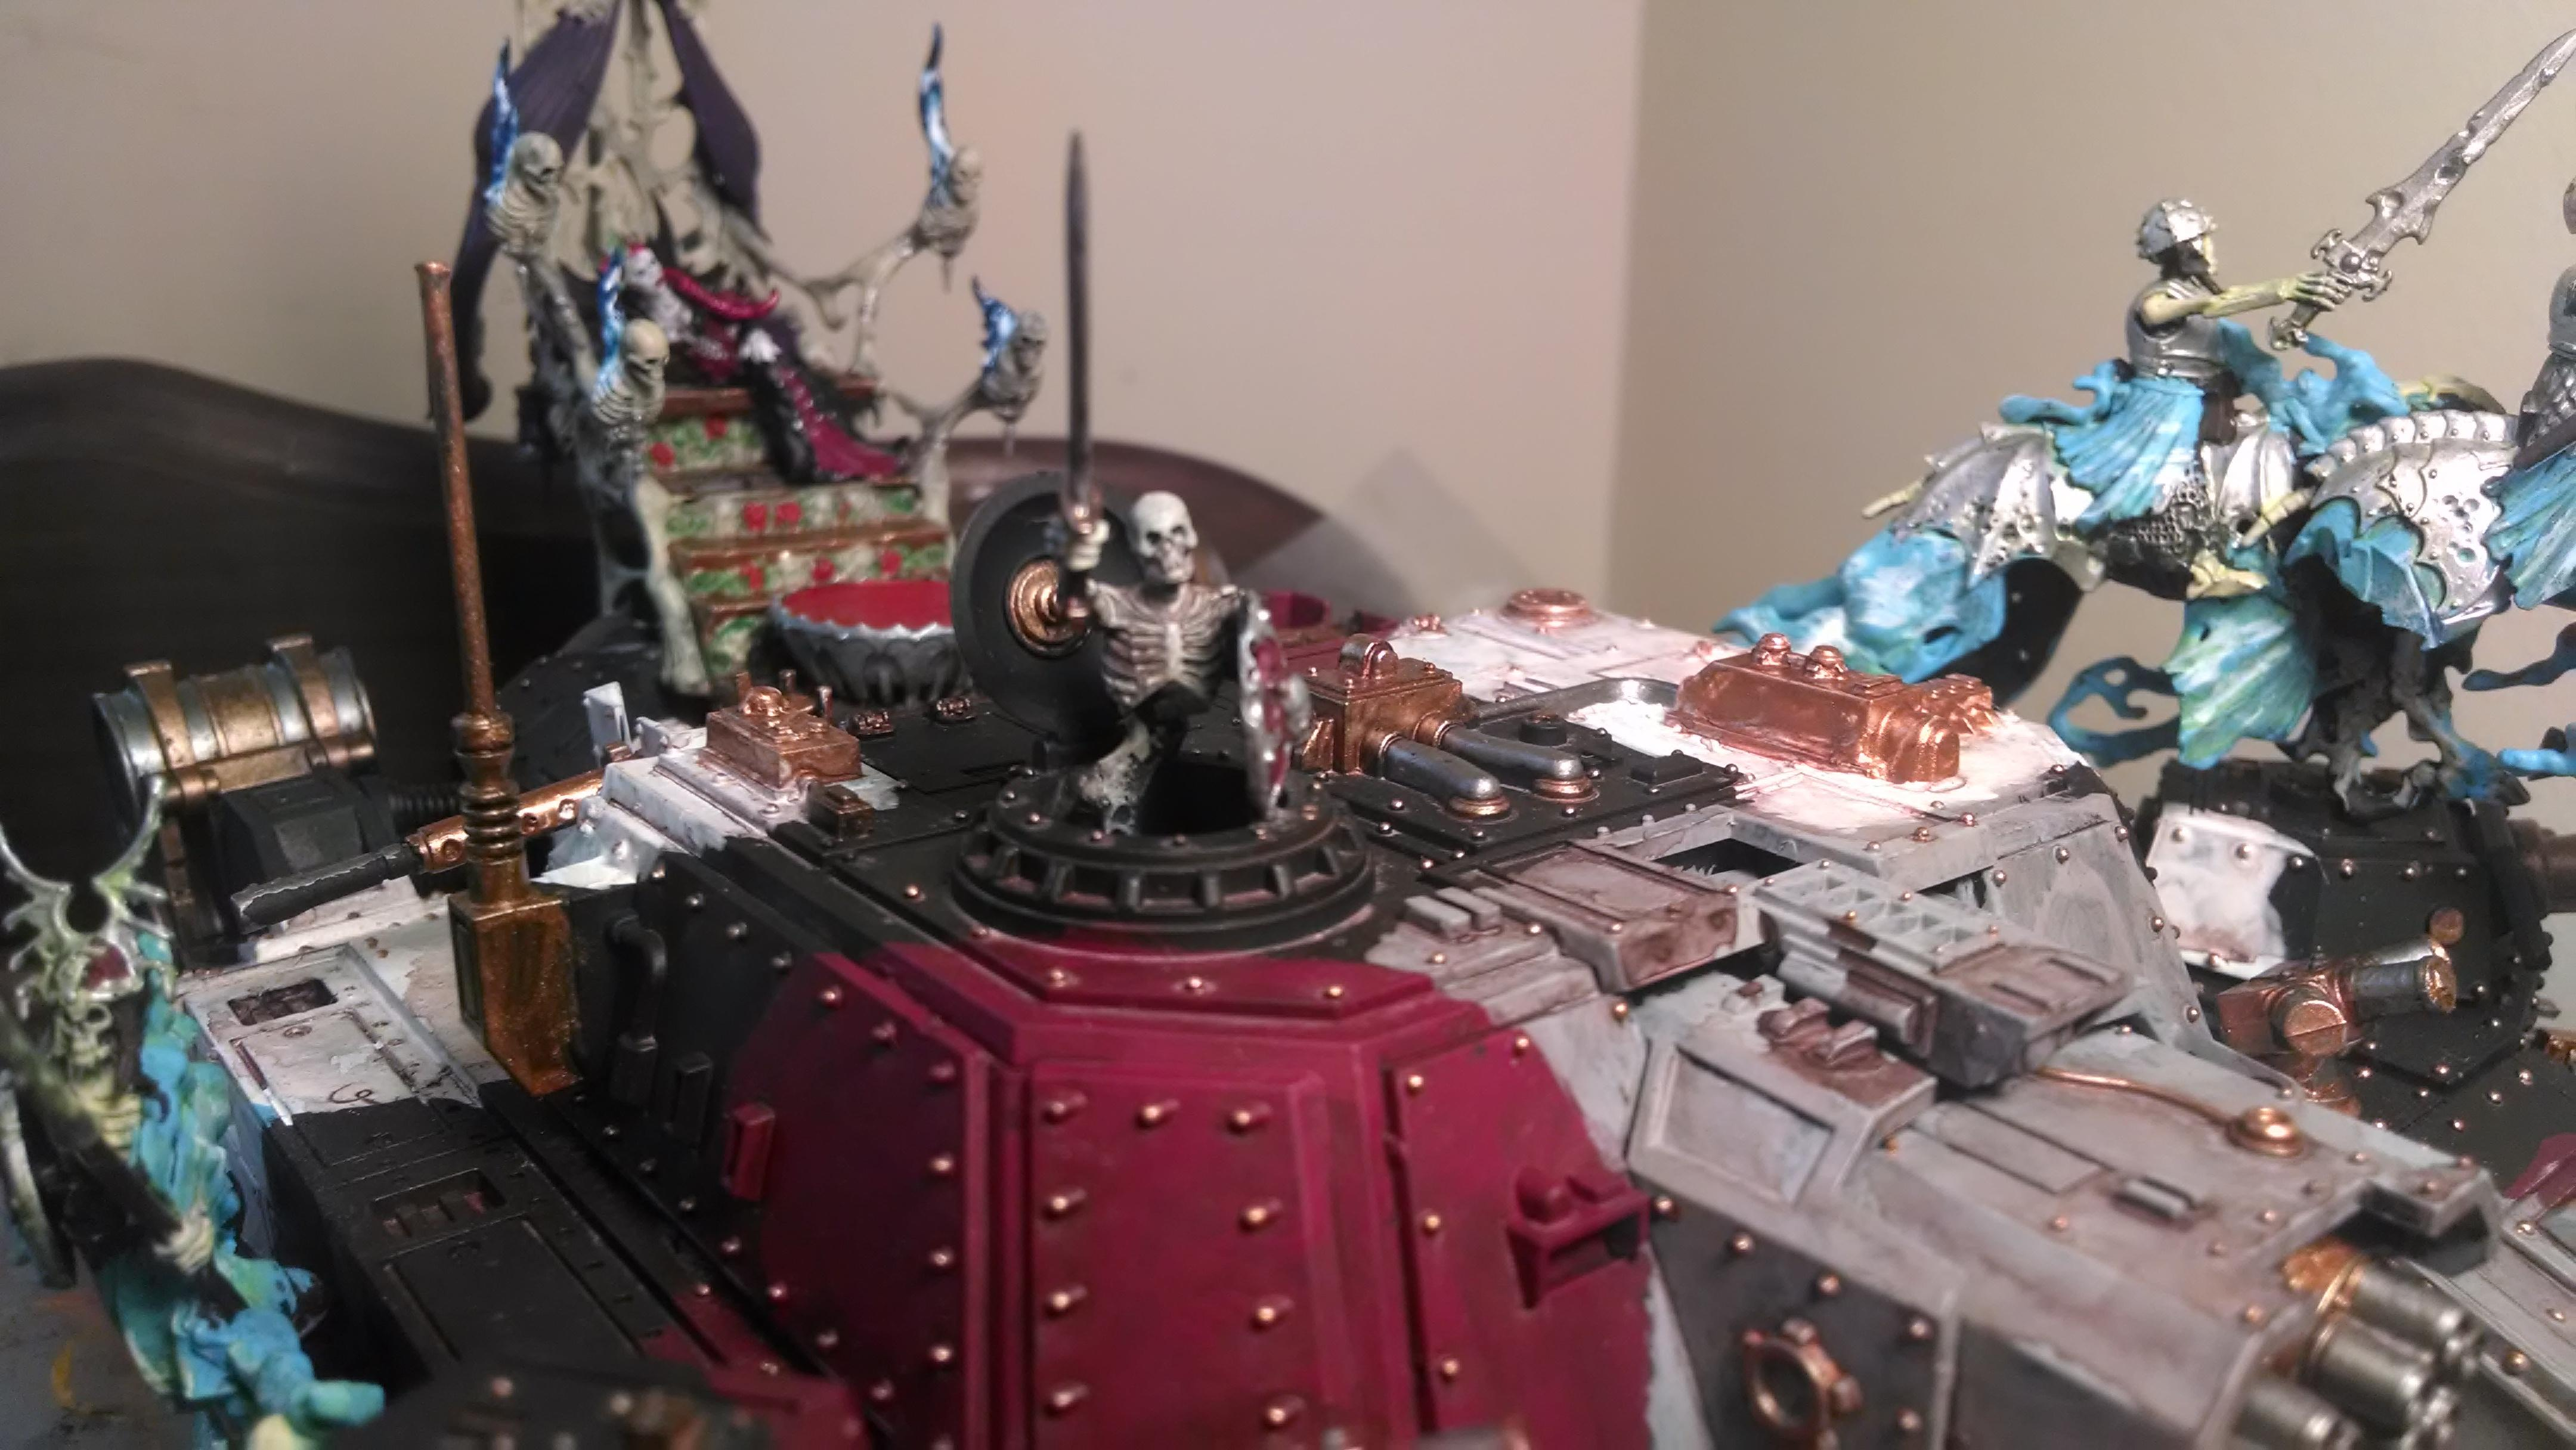 Blood, Conversion, Guard, Imperial, Imperial Guard, Stormlord, Super-heavy, Undead, Vampire, Warhammer 40,000